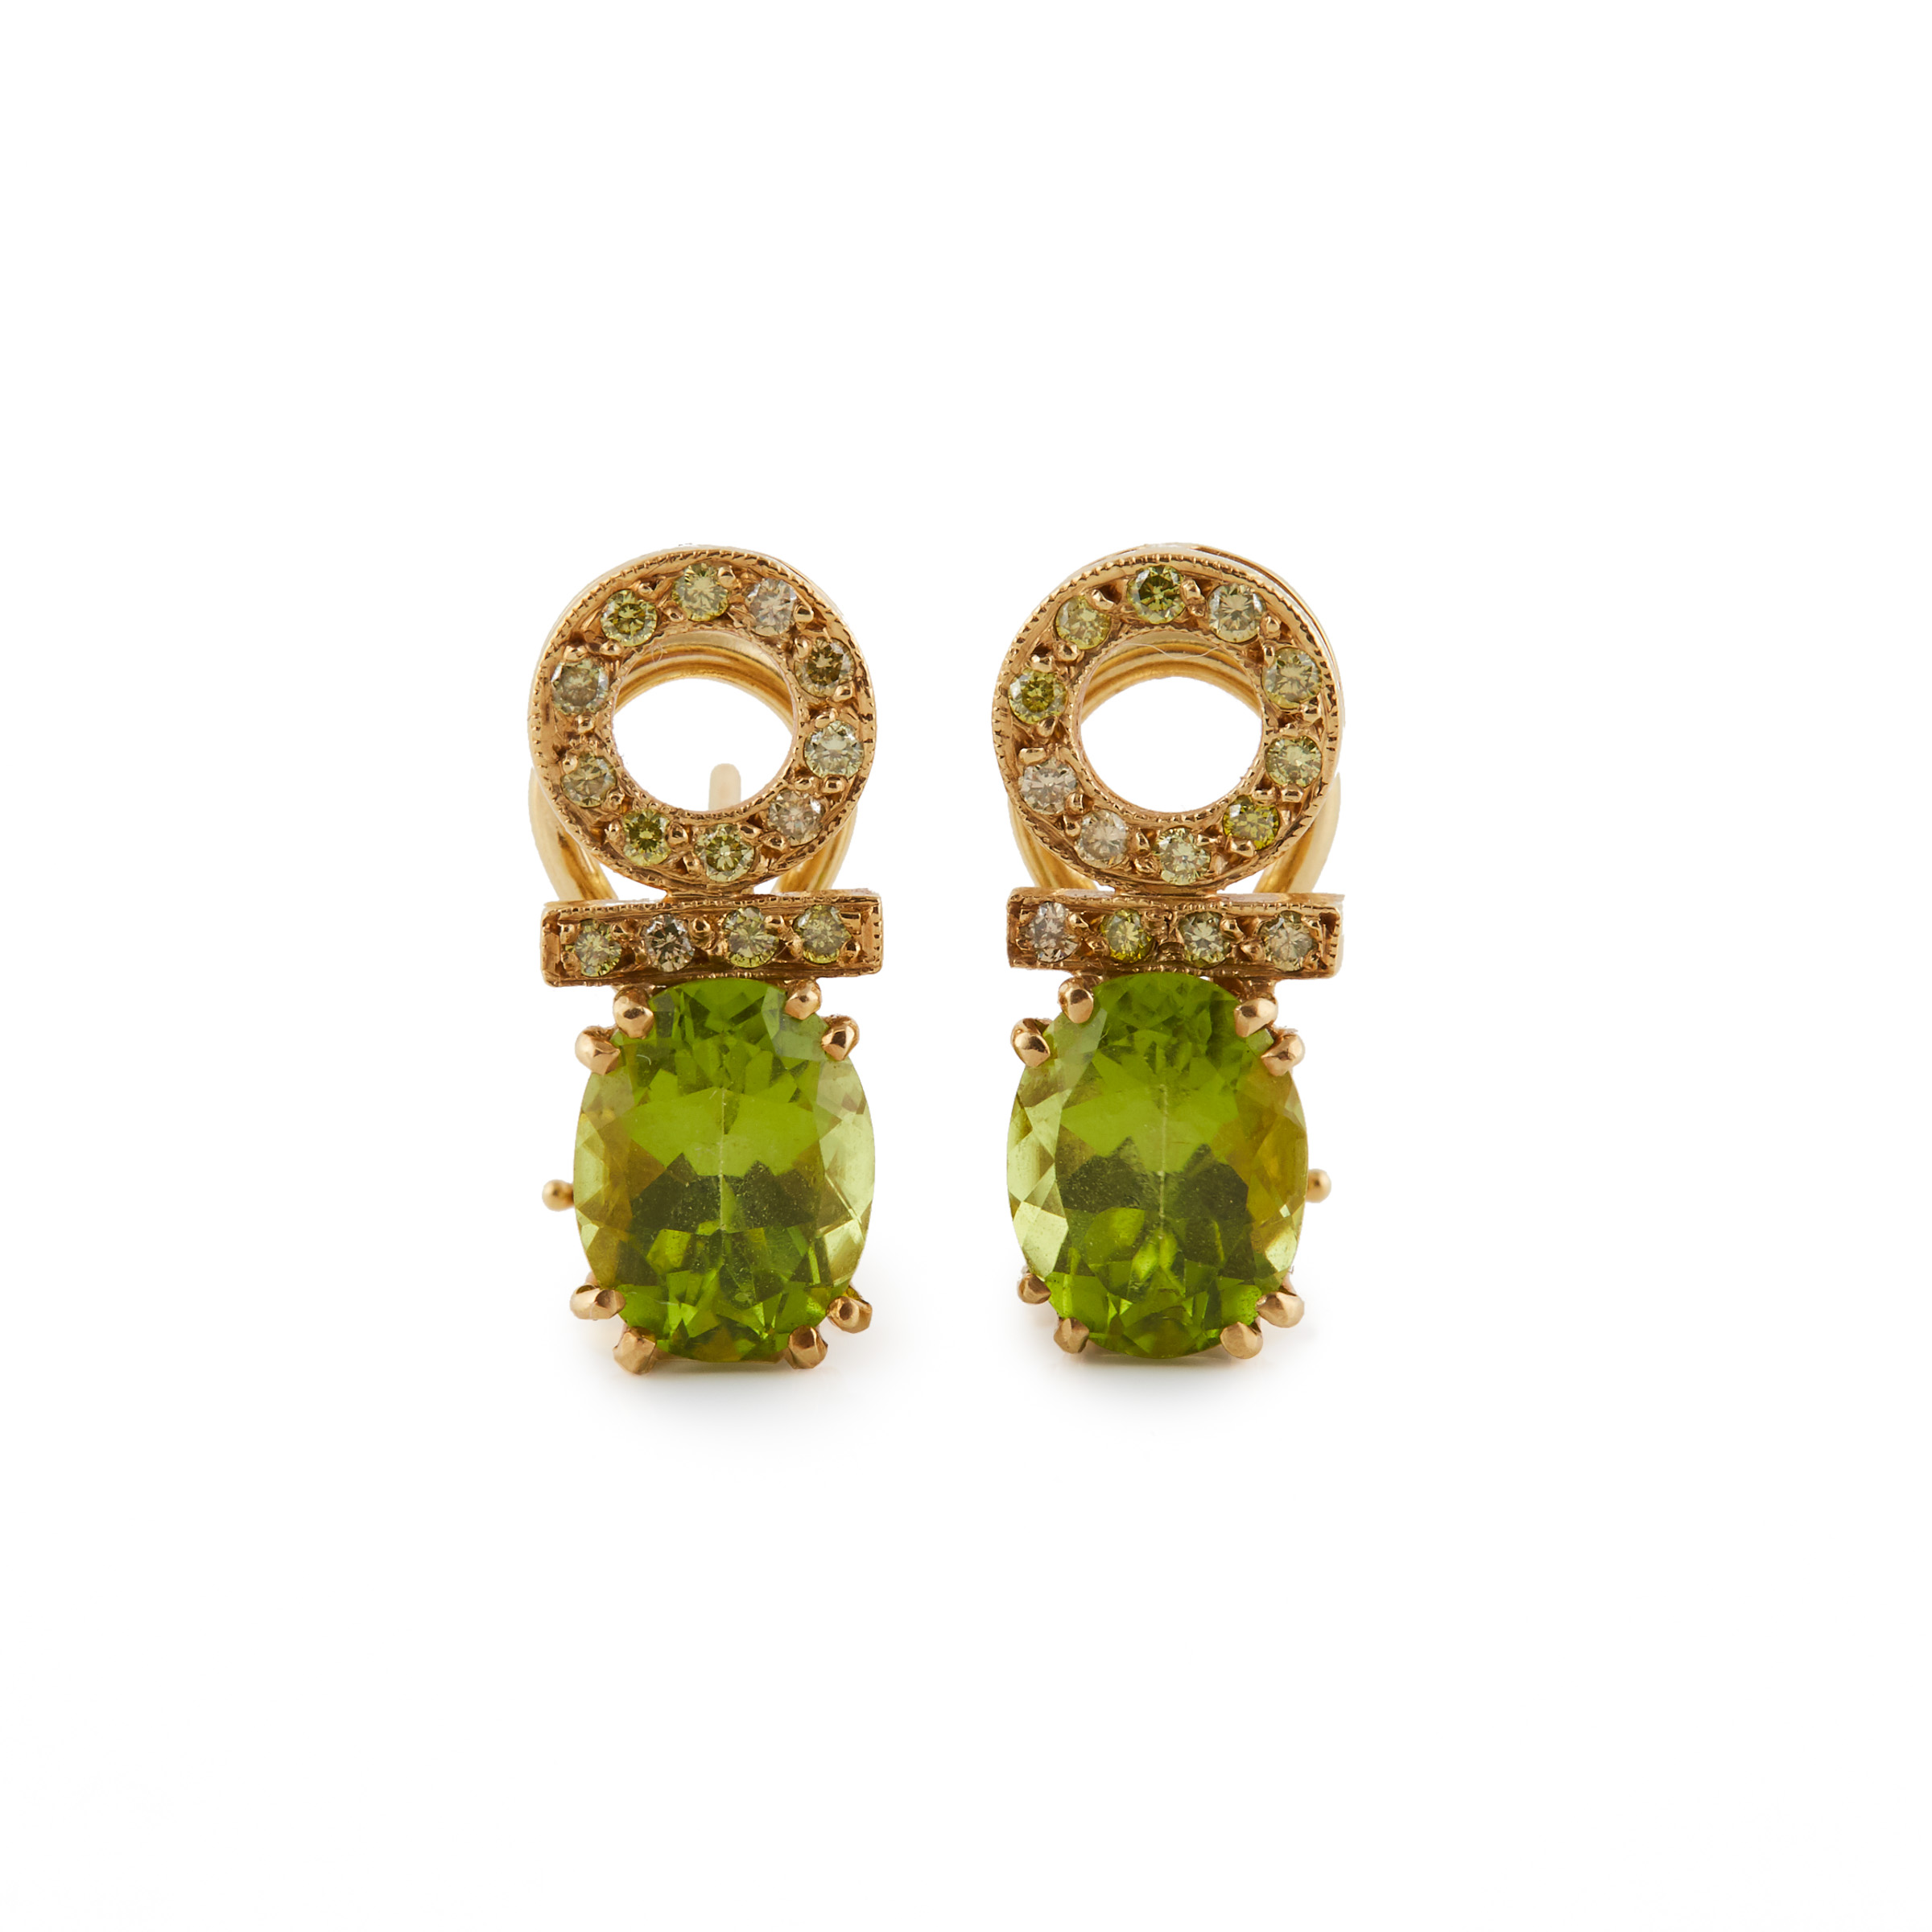 Pair Of 18k Yellow Gold Earrings